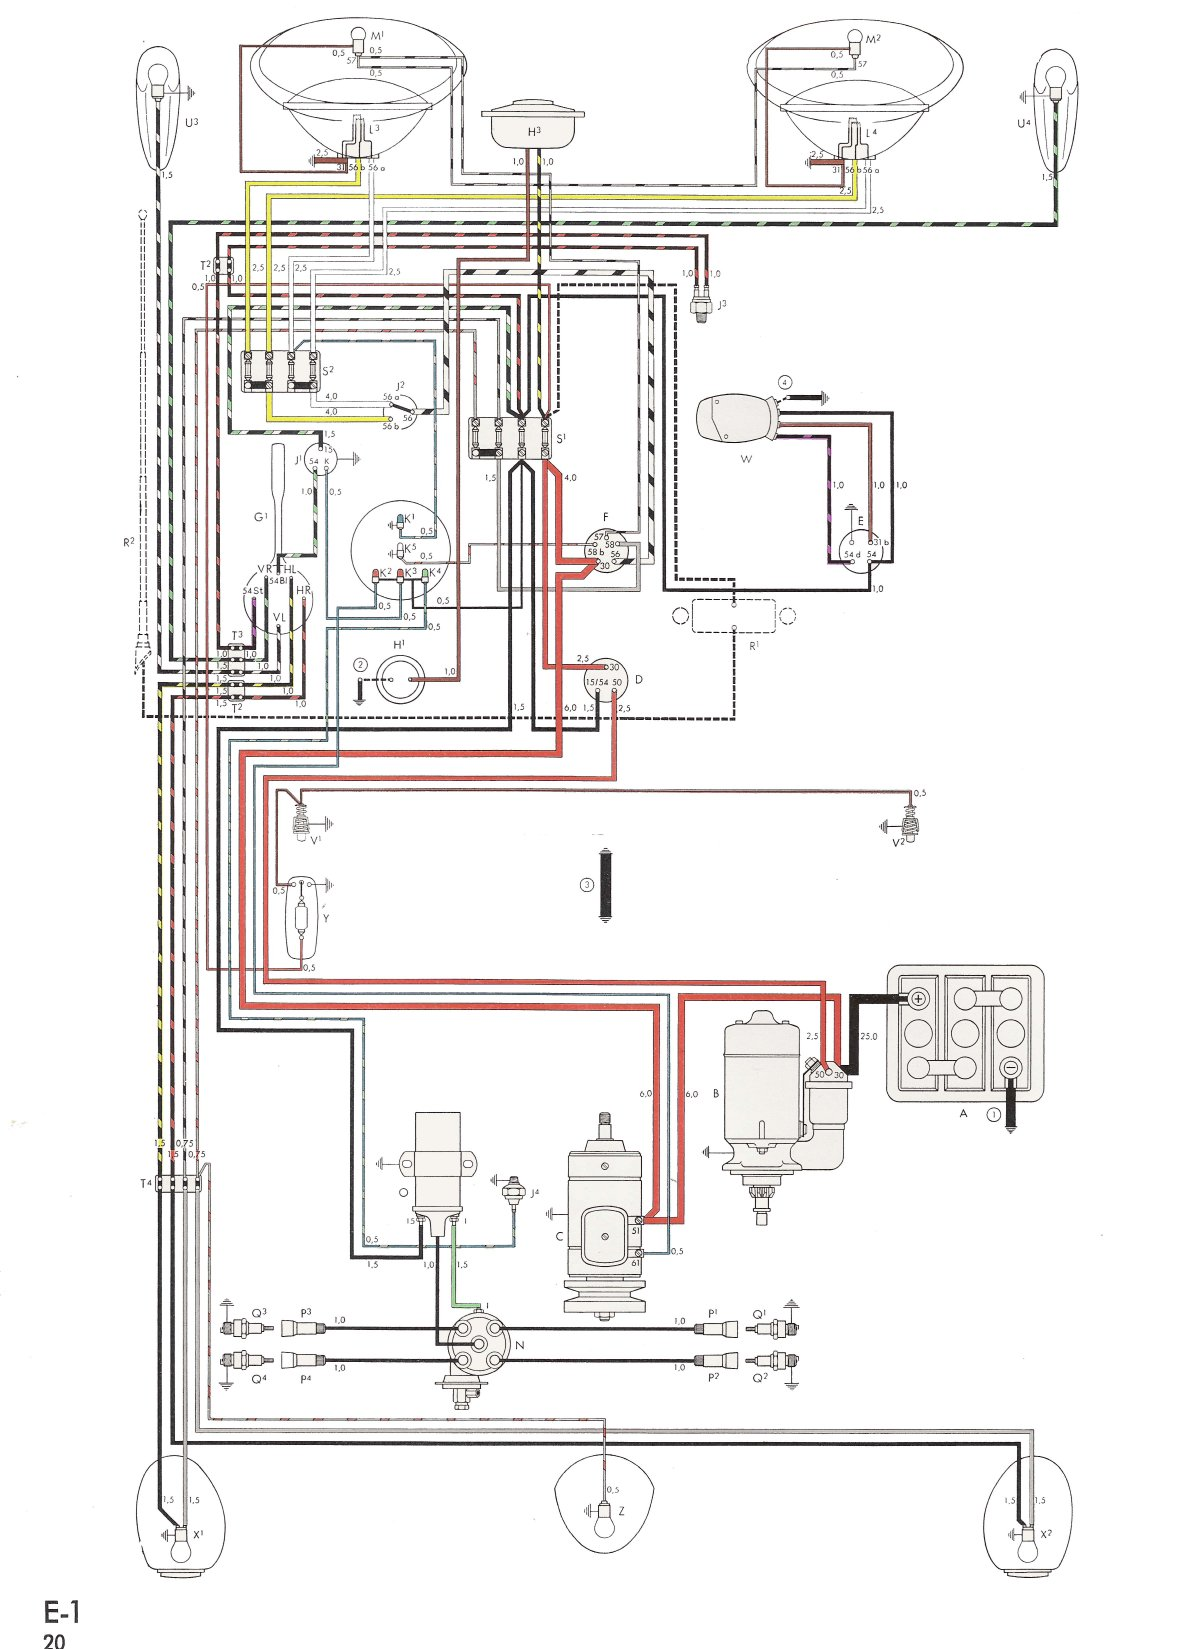 1973 vw beetle ignition coil wiring diagram 2010 f150 xlt radio diagrams switch for bug get free